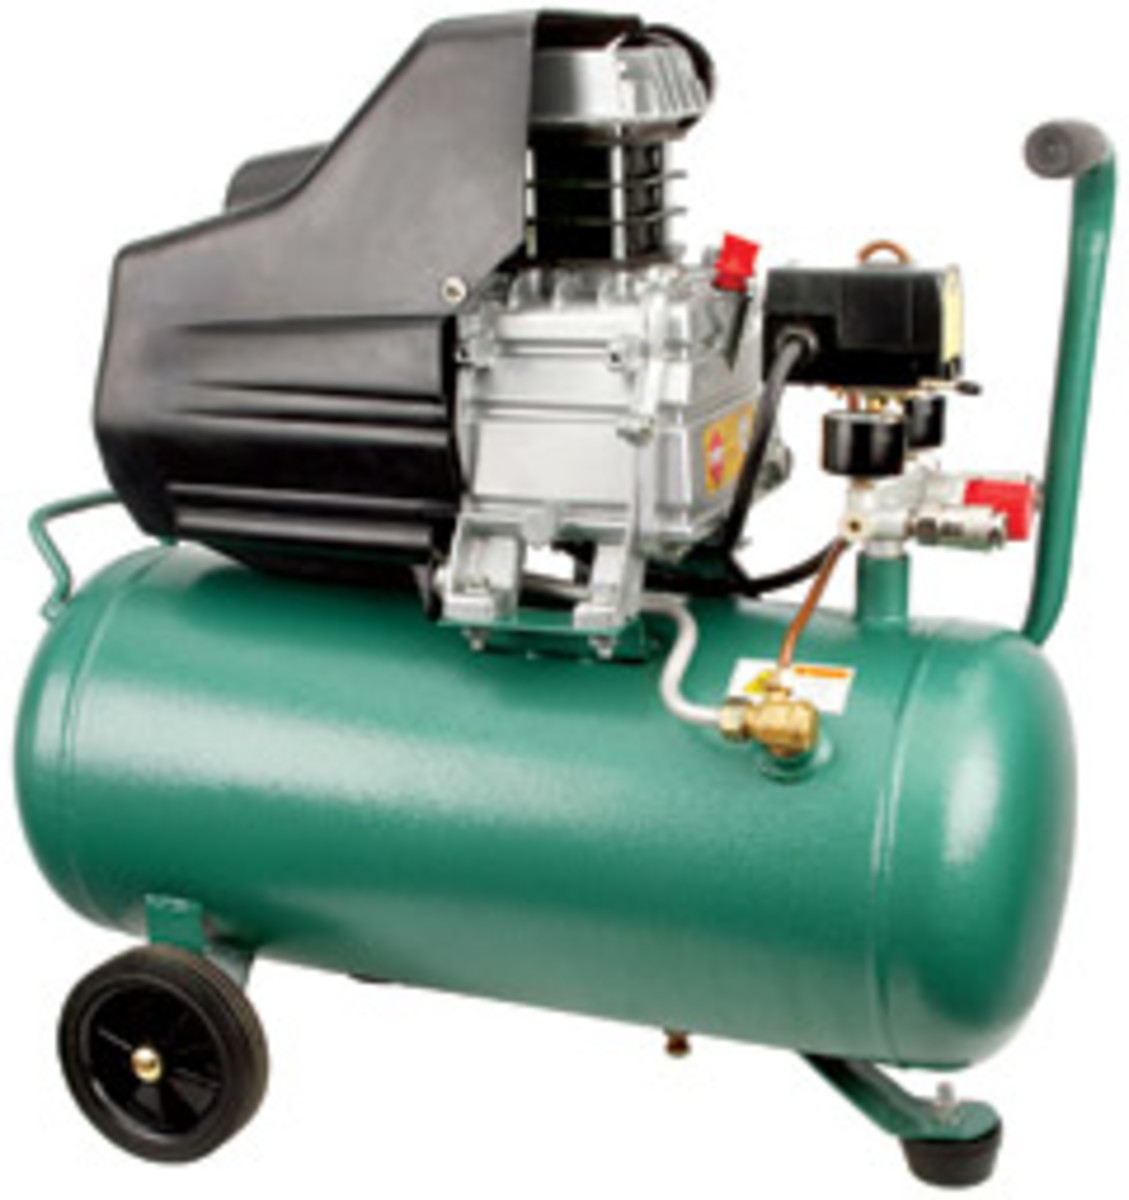 Grizzly's new 2-1/2-hp, 6.3-gallon air compressor, model T21888.